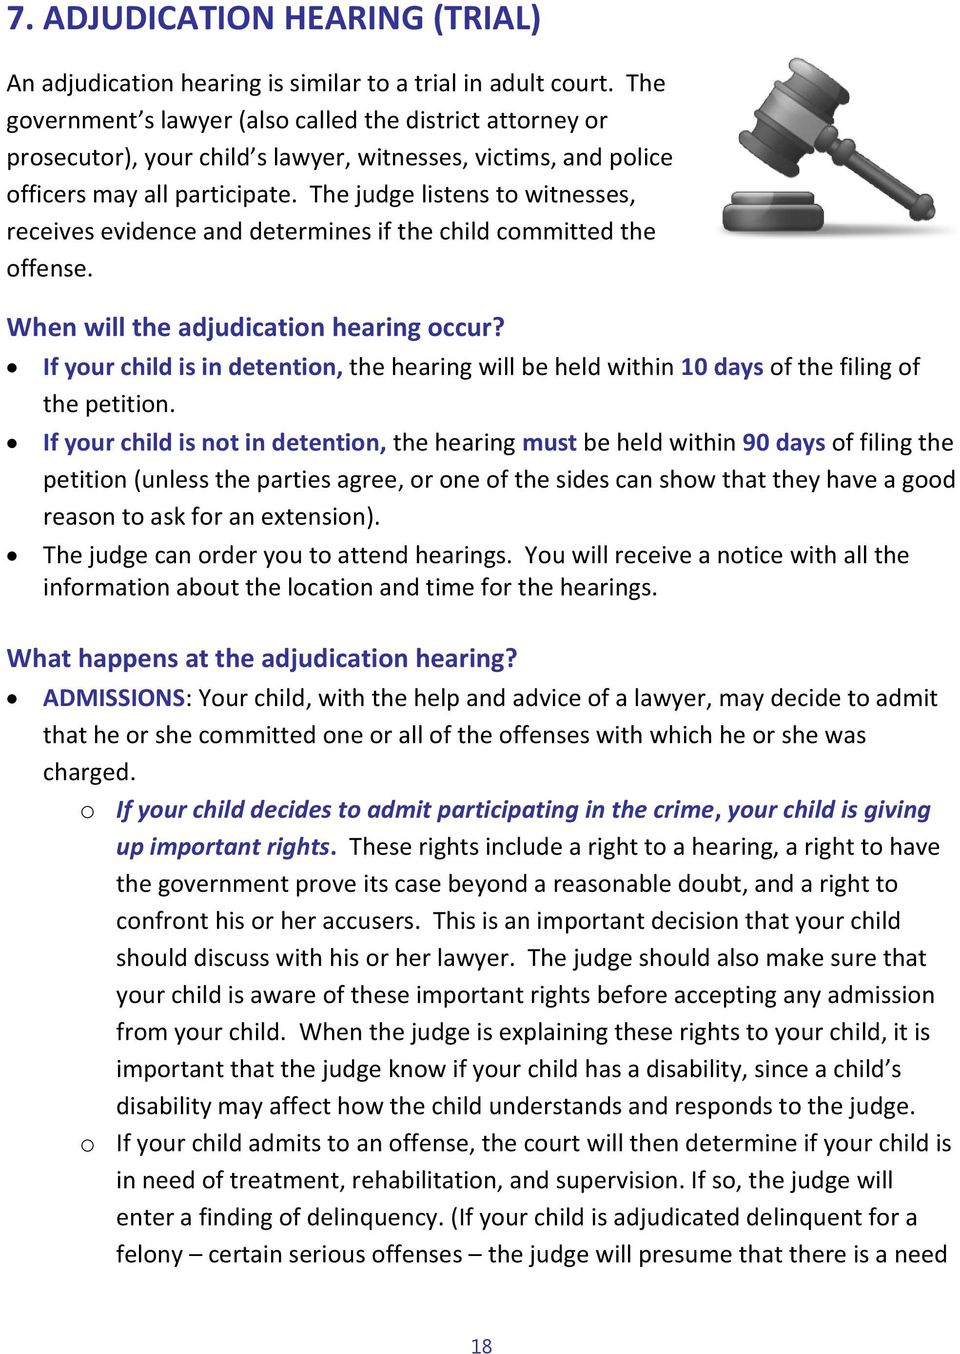 The judge listens to witnesses, receives evidence and determines if the child committed the offense. When will the adjudication hearing occur?